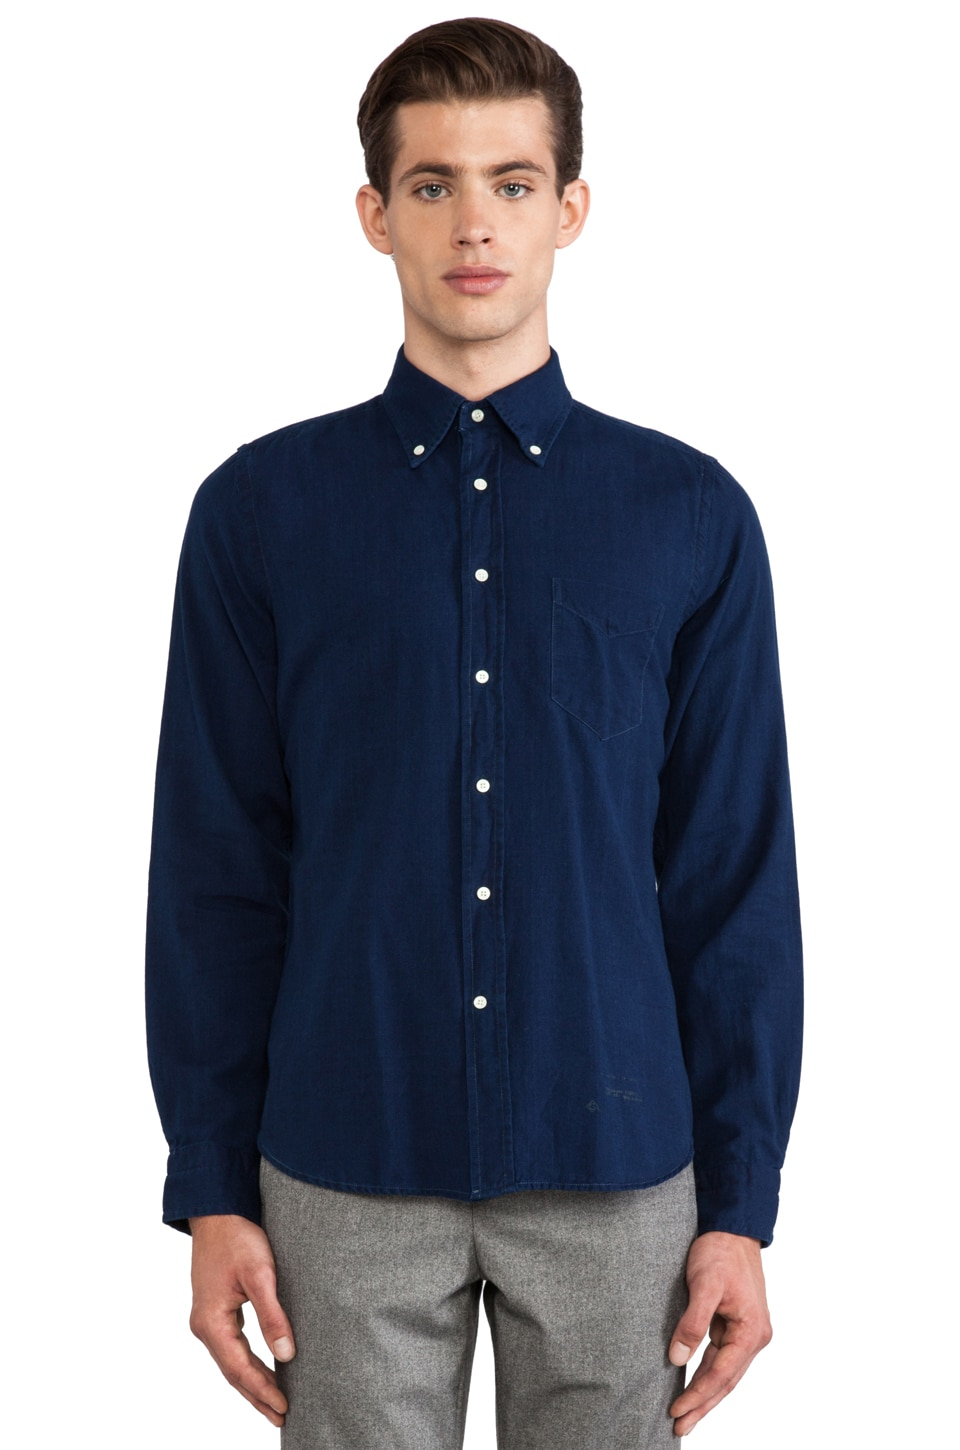 GANT Rugger Indigo Oxford in Dark Indigo